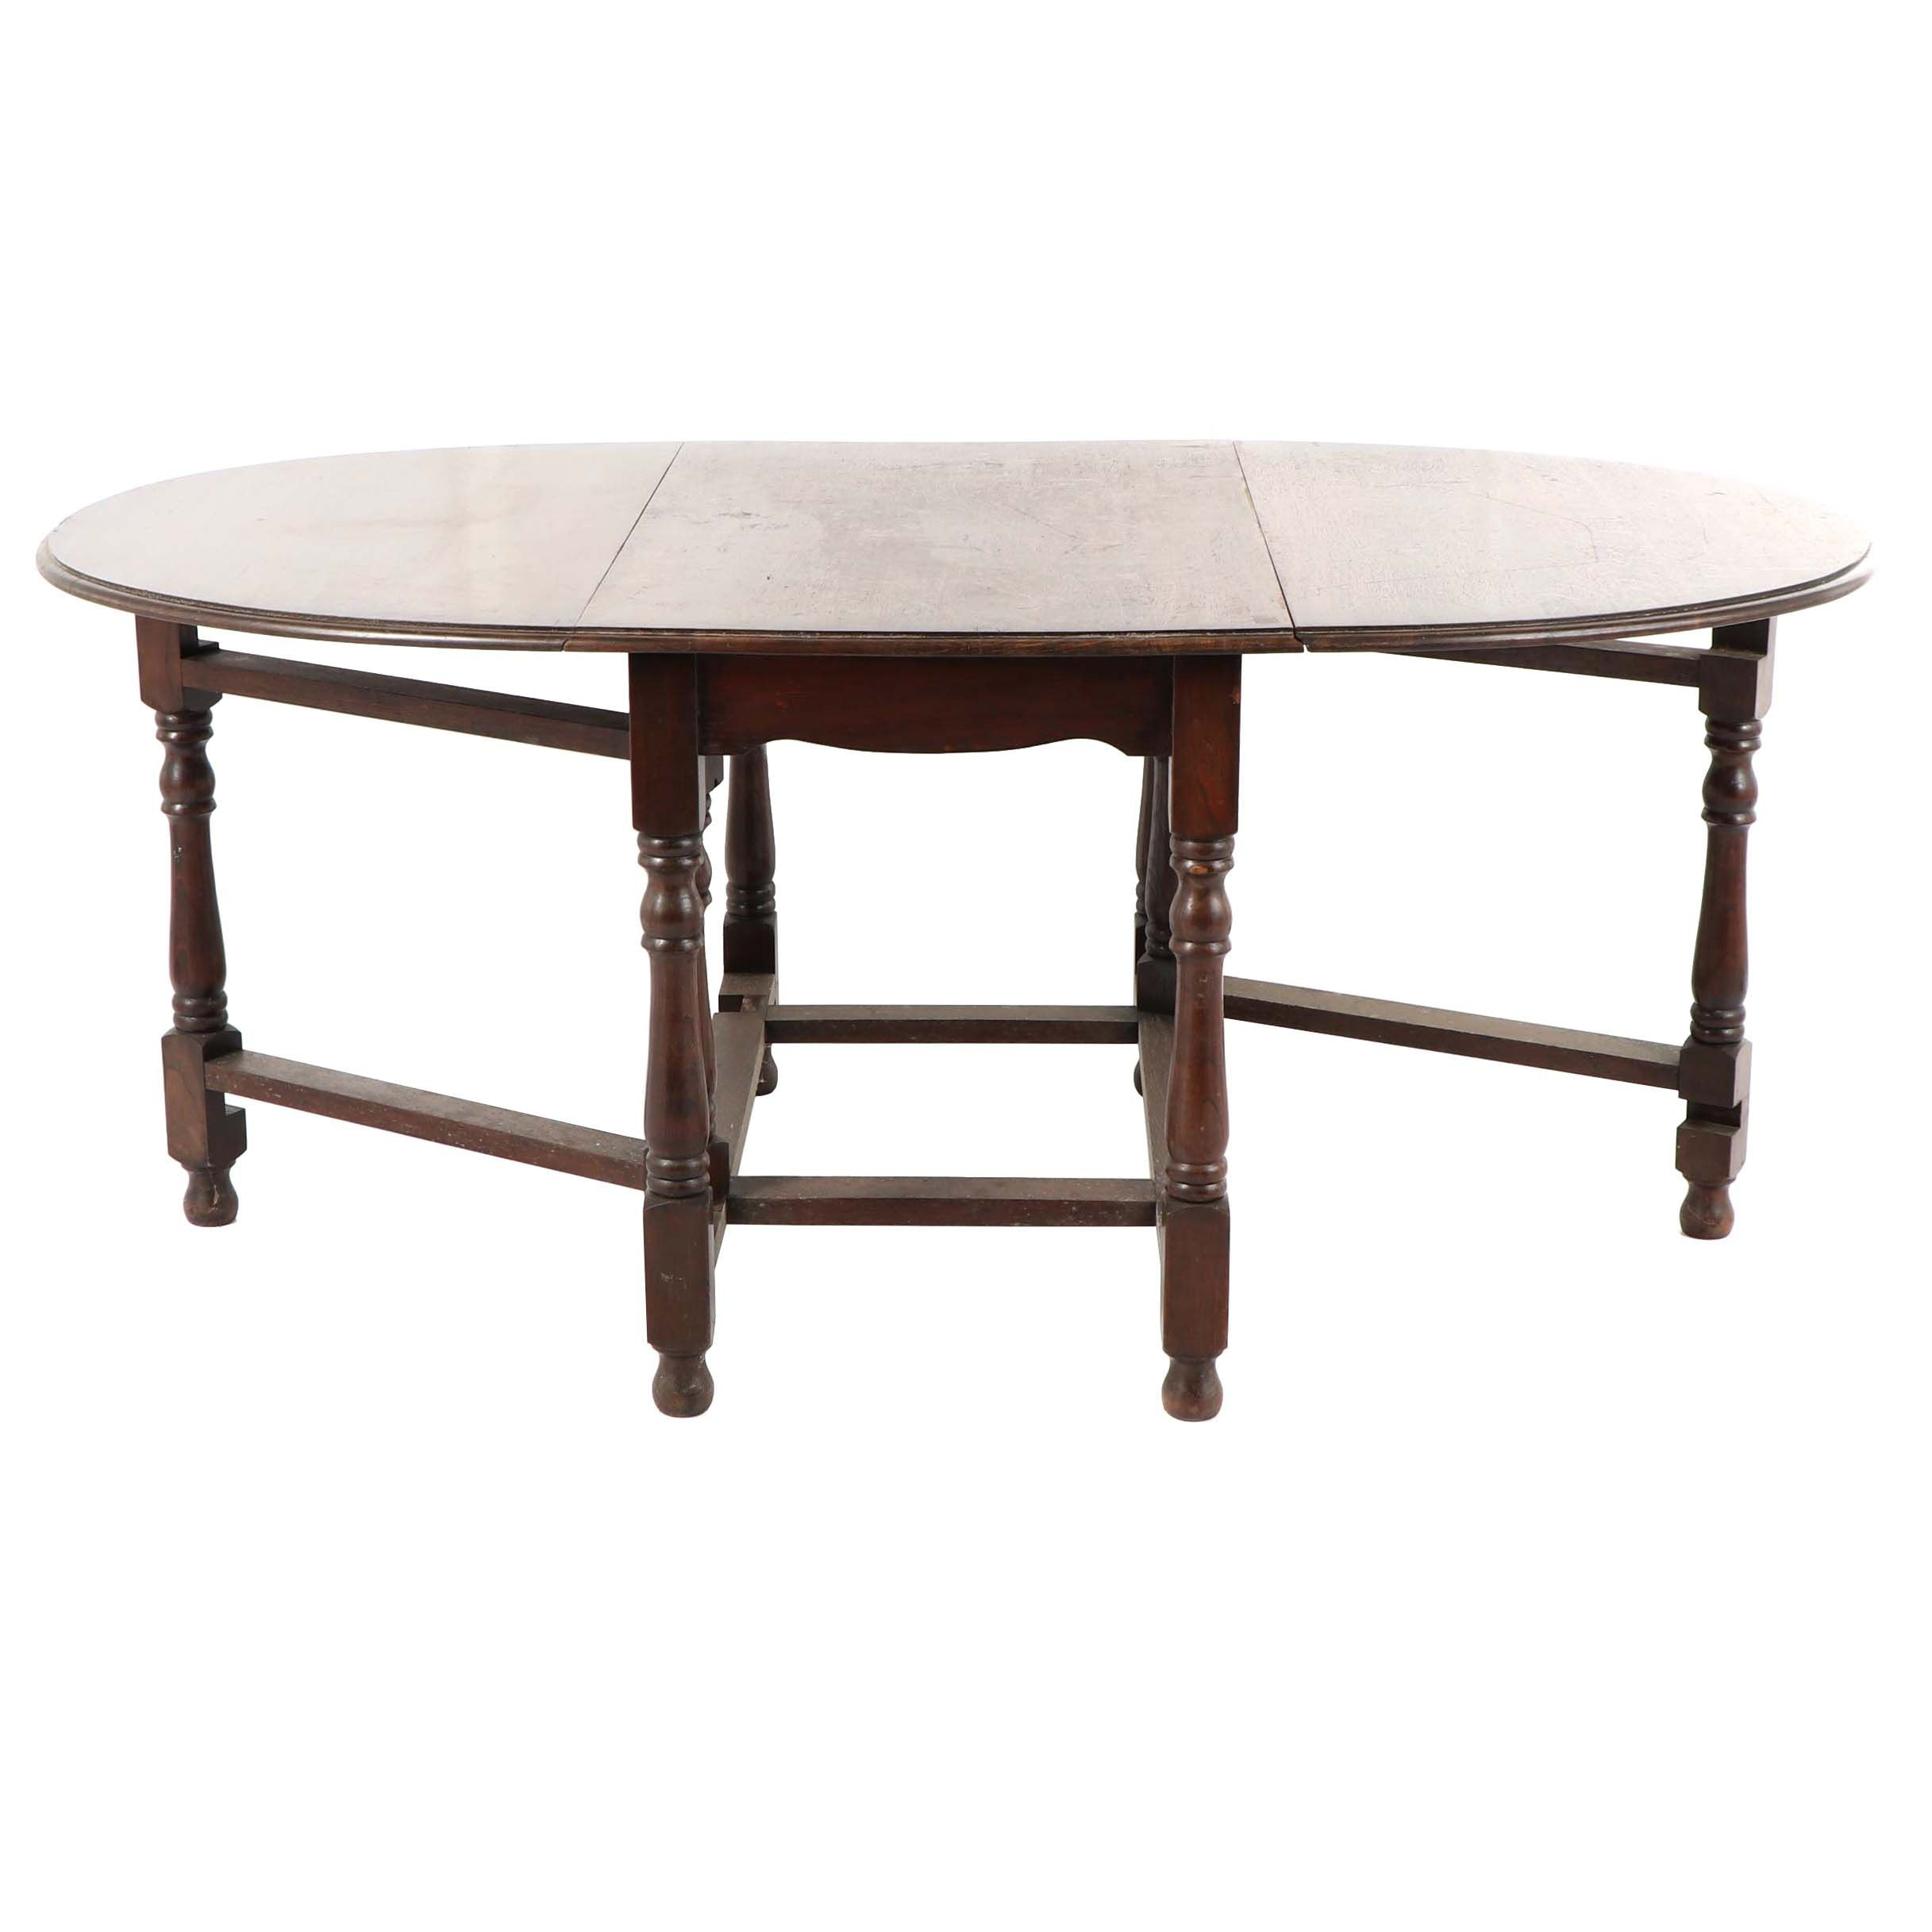 Oak Drop Leaf Dining Table, Early 20th Century